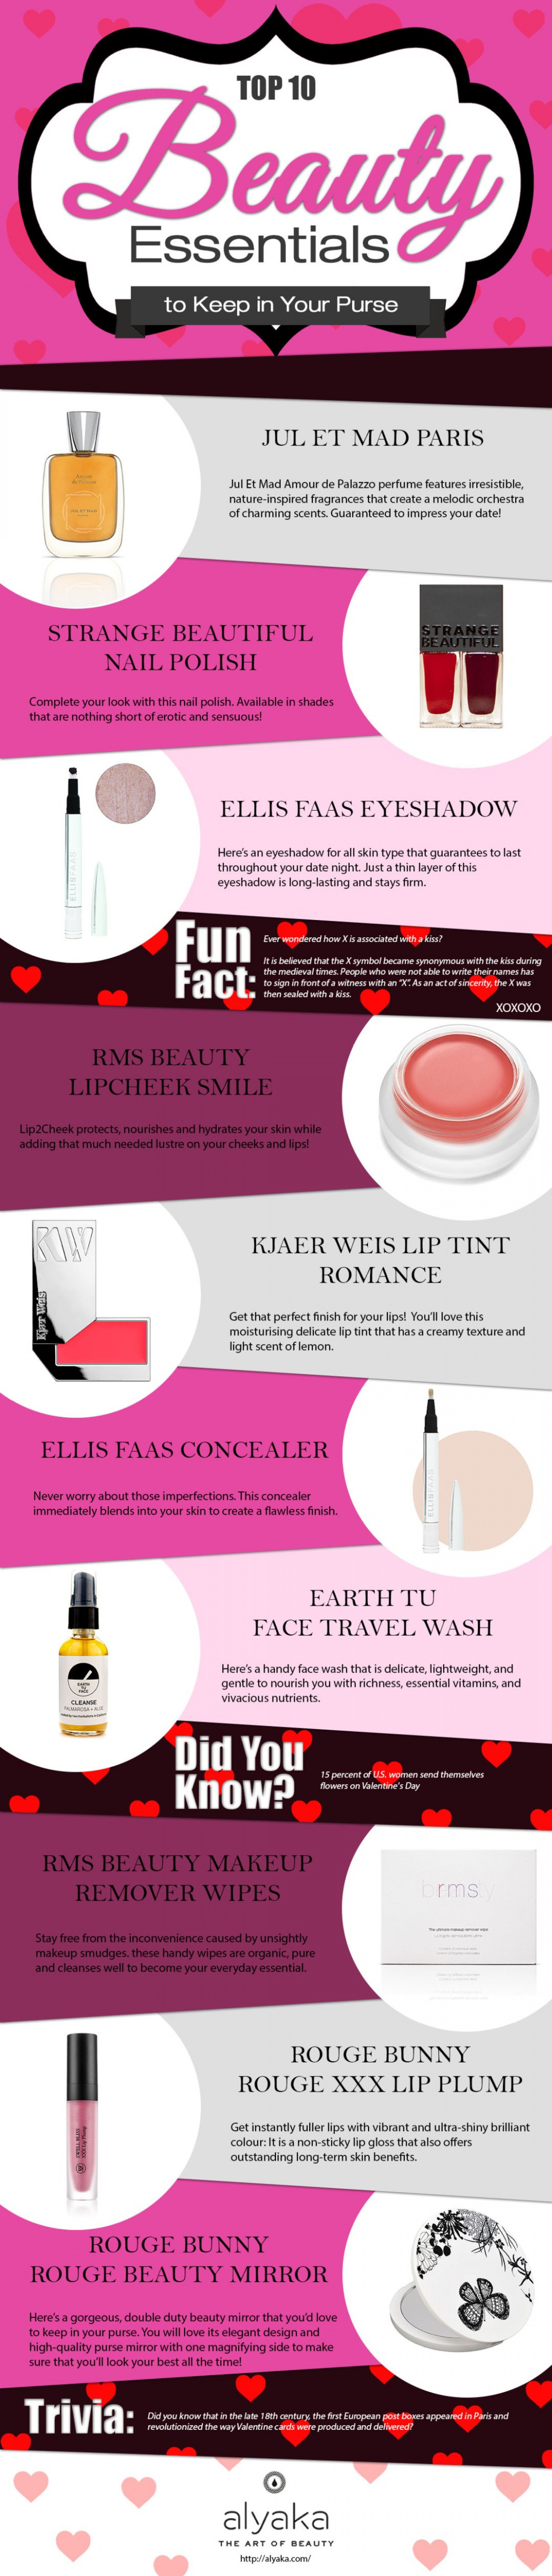 Top 10 Beauty Essentials to Keep in Your Purse this Valentine's Day Infographic